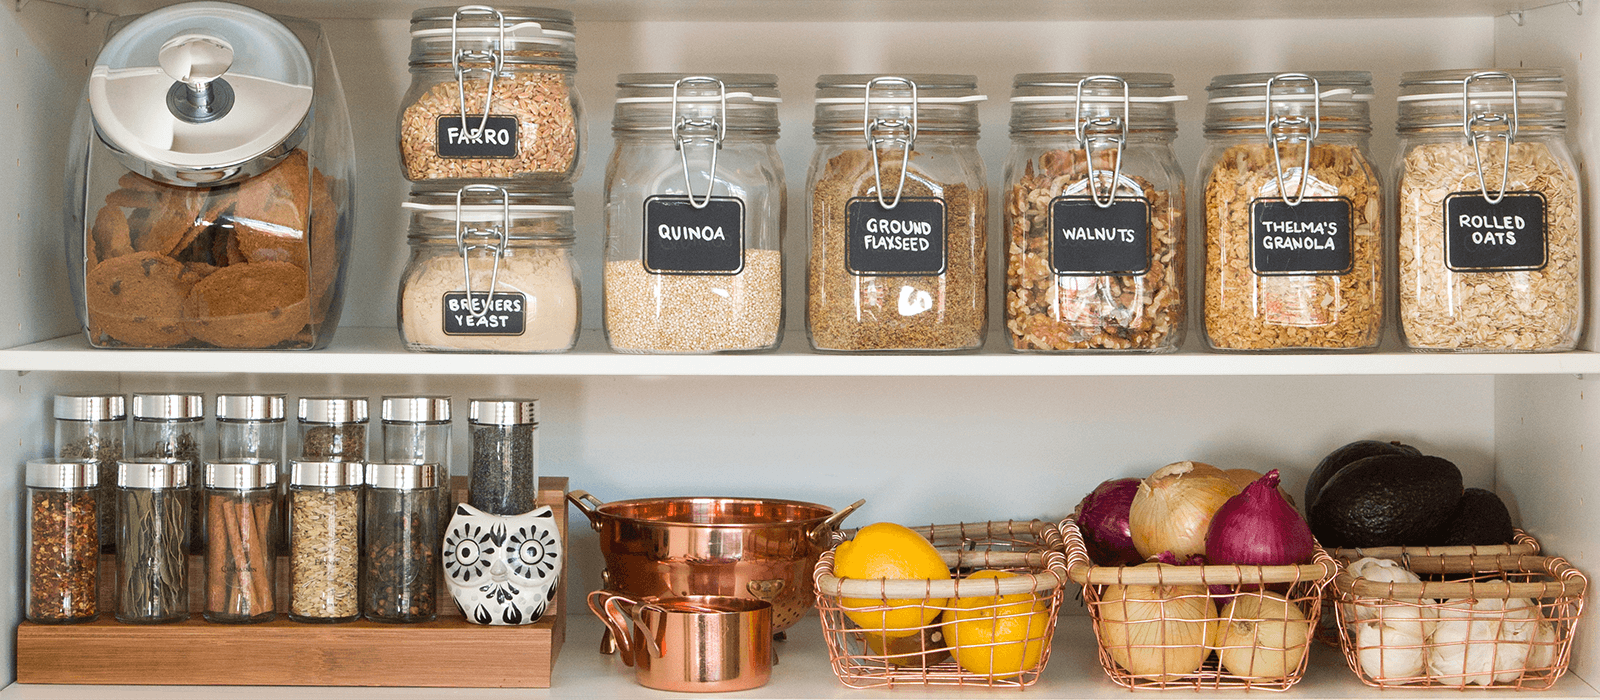 Pantry Organization Follow These Tips For Efficient And Elegant Pantry Organization